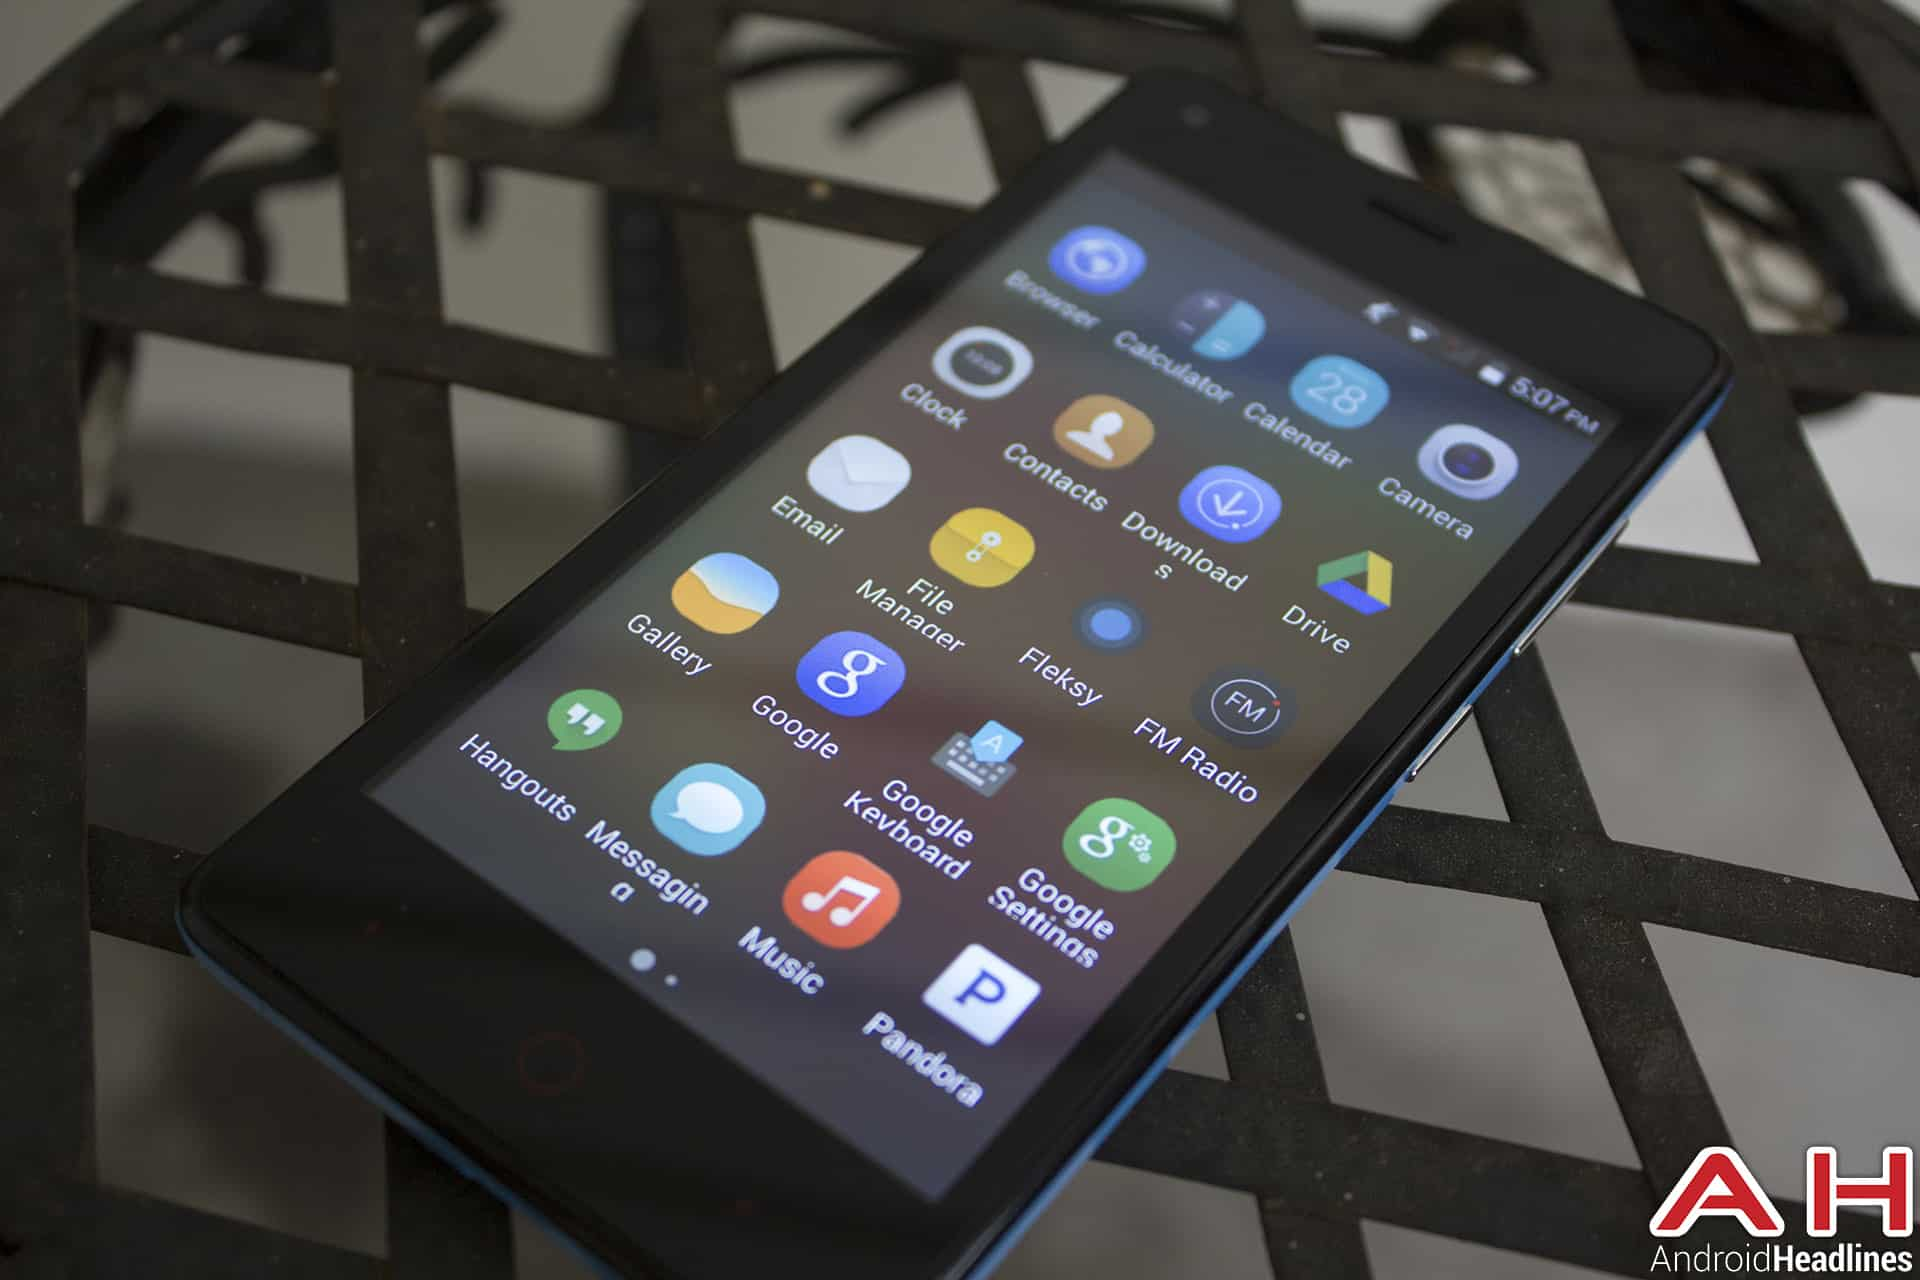 elephone-g1-review-5